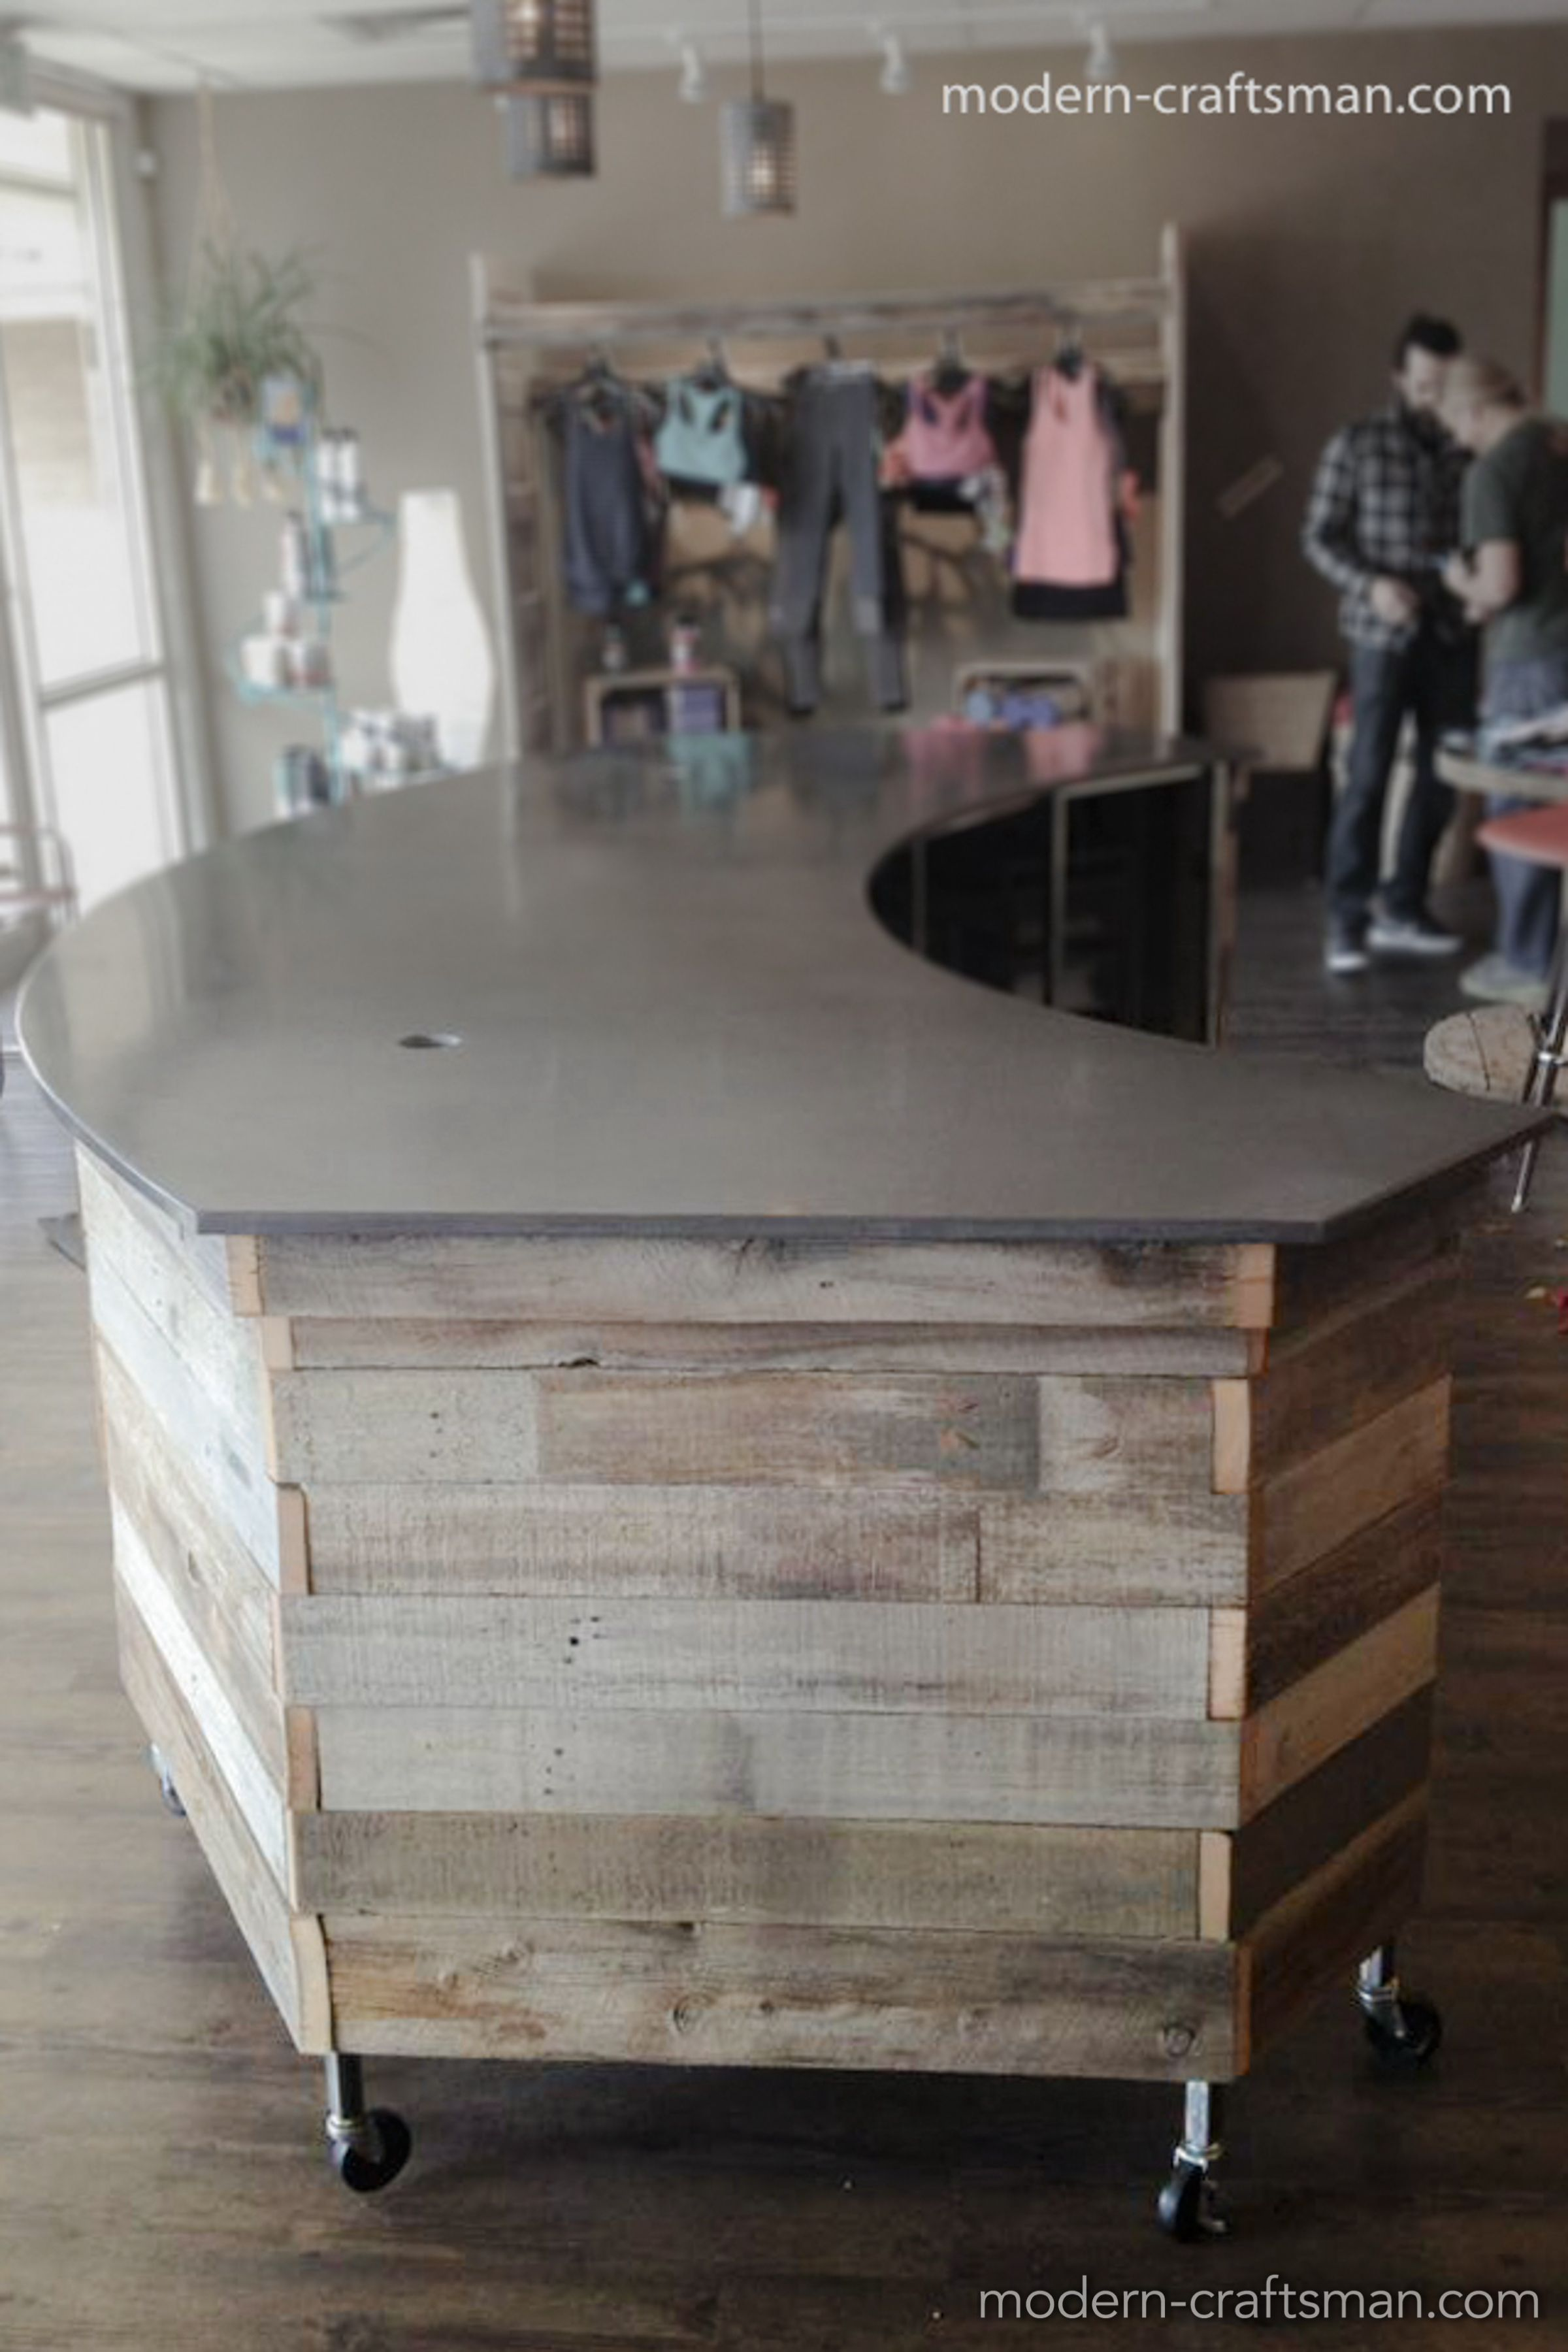 Craftsman Style Wood And Concrete Reception Desk For Yoga